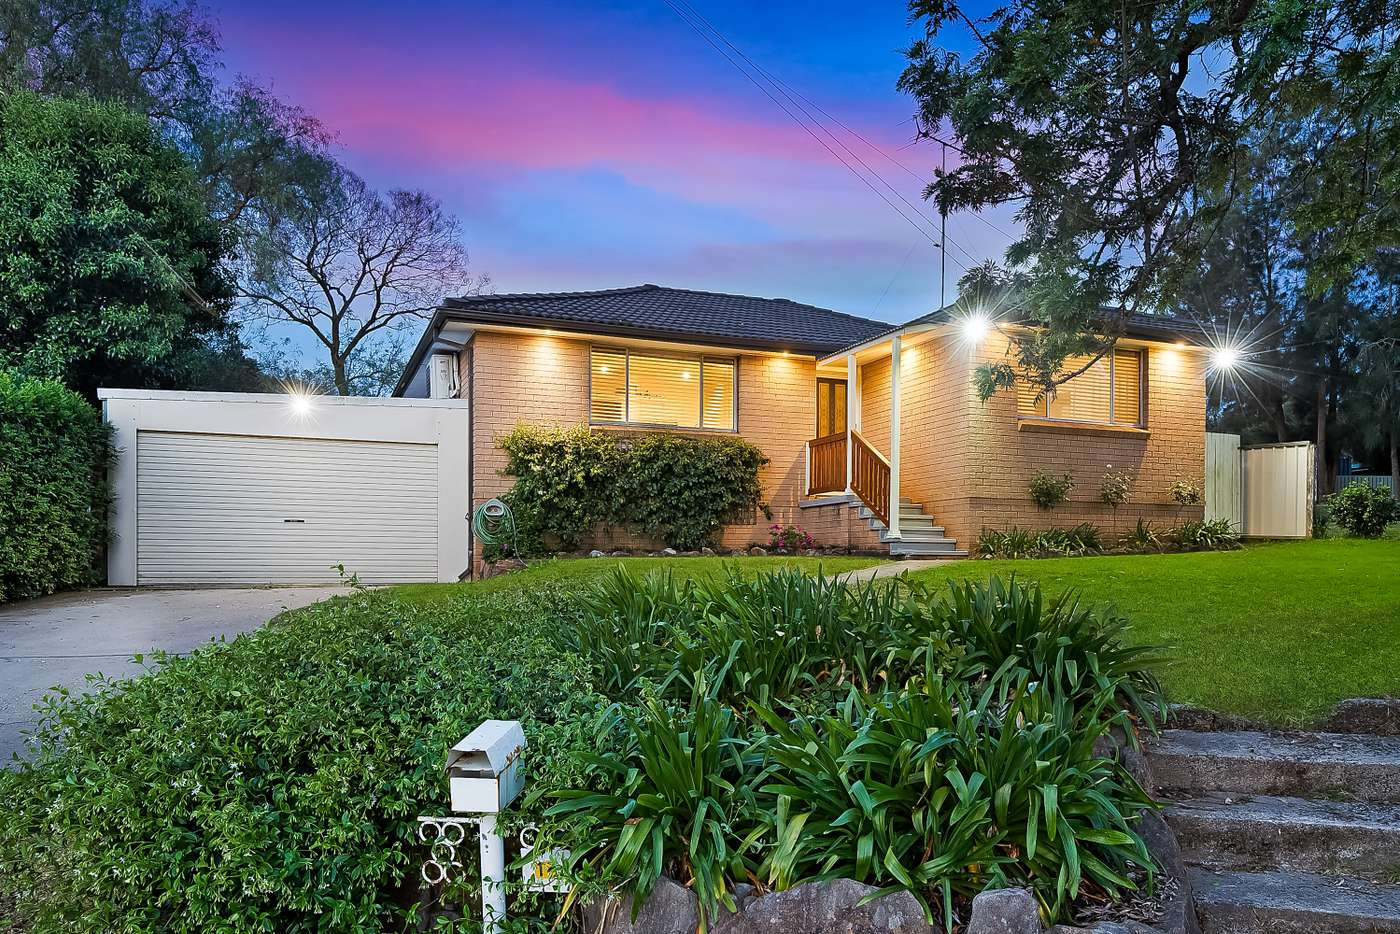 Main view of Homely house listing, 17 Oliver Street, Riverstone NSW 2765